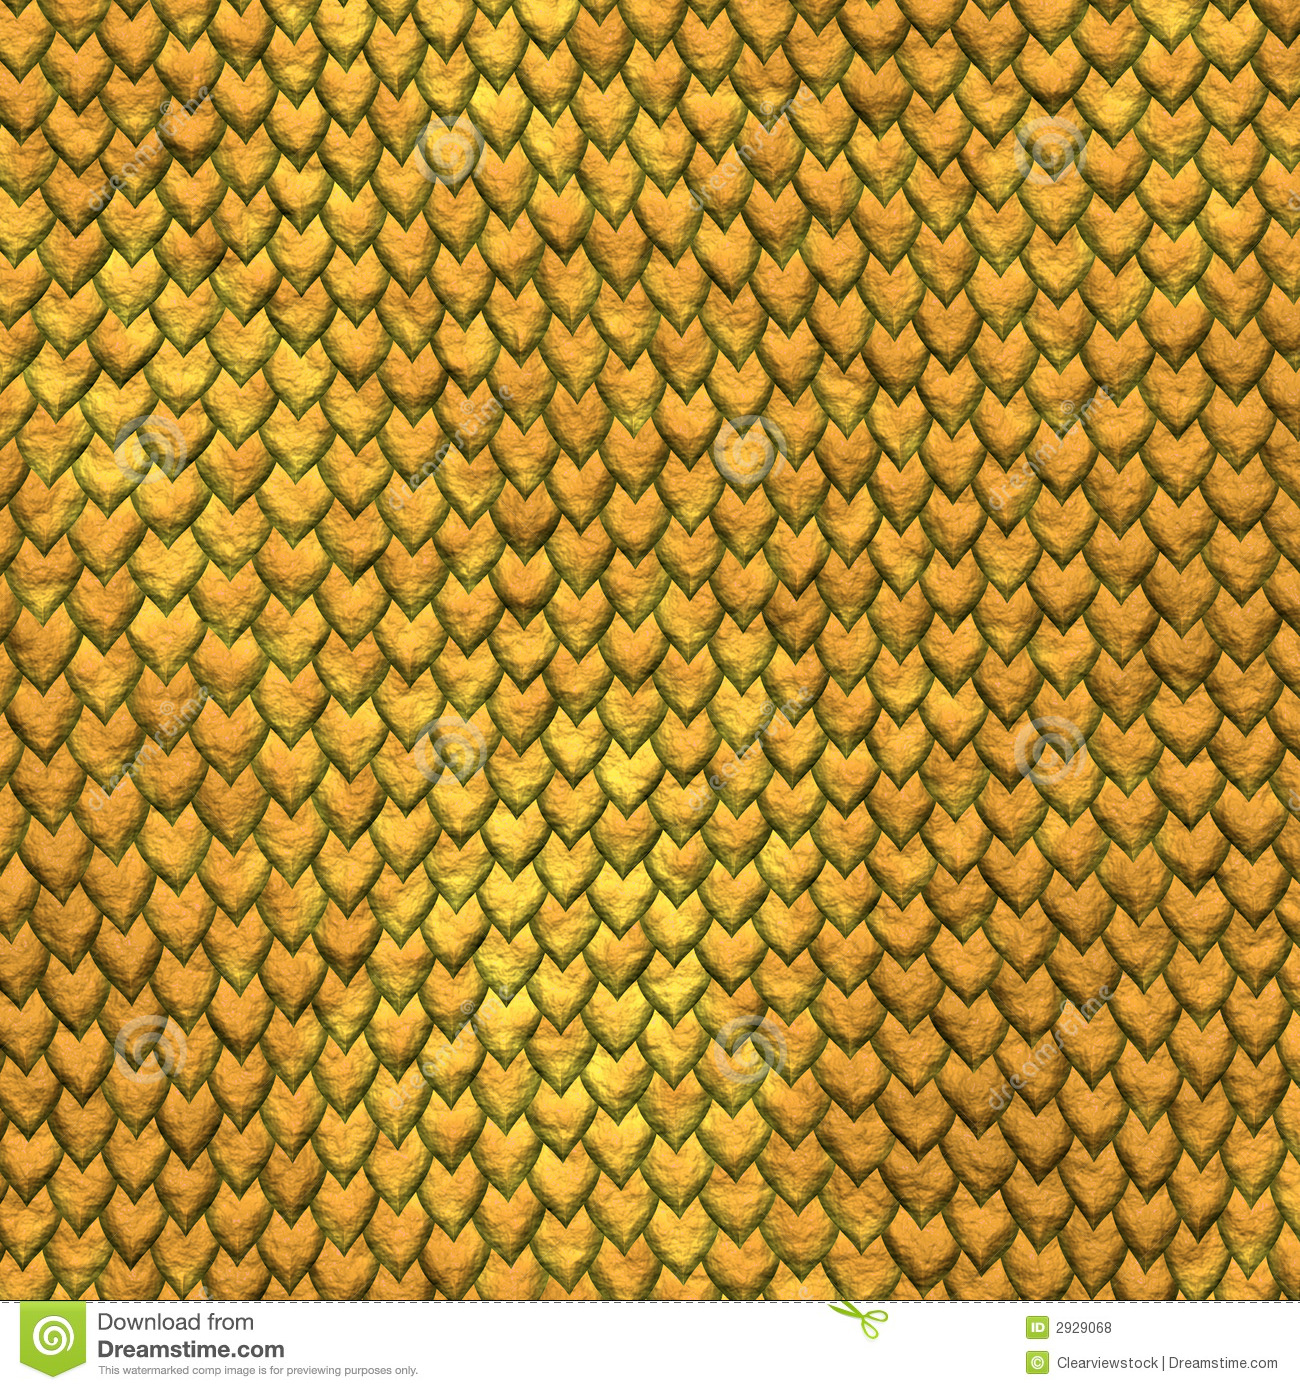 Dragon Skin Gold Scales Background Royalty Free Stock